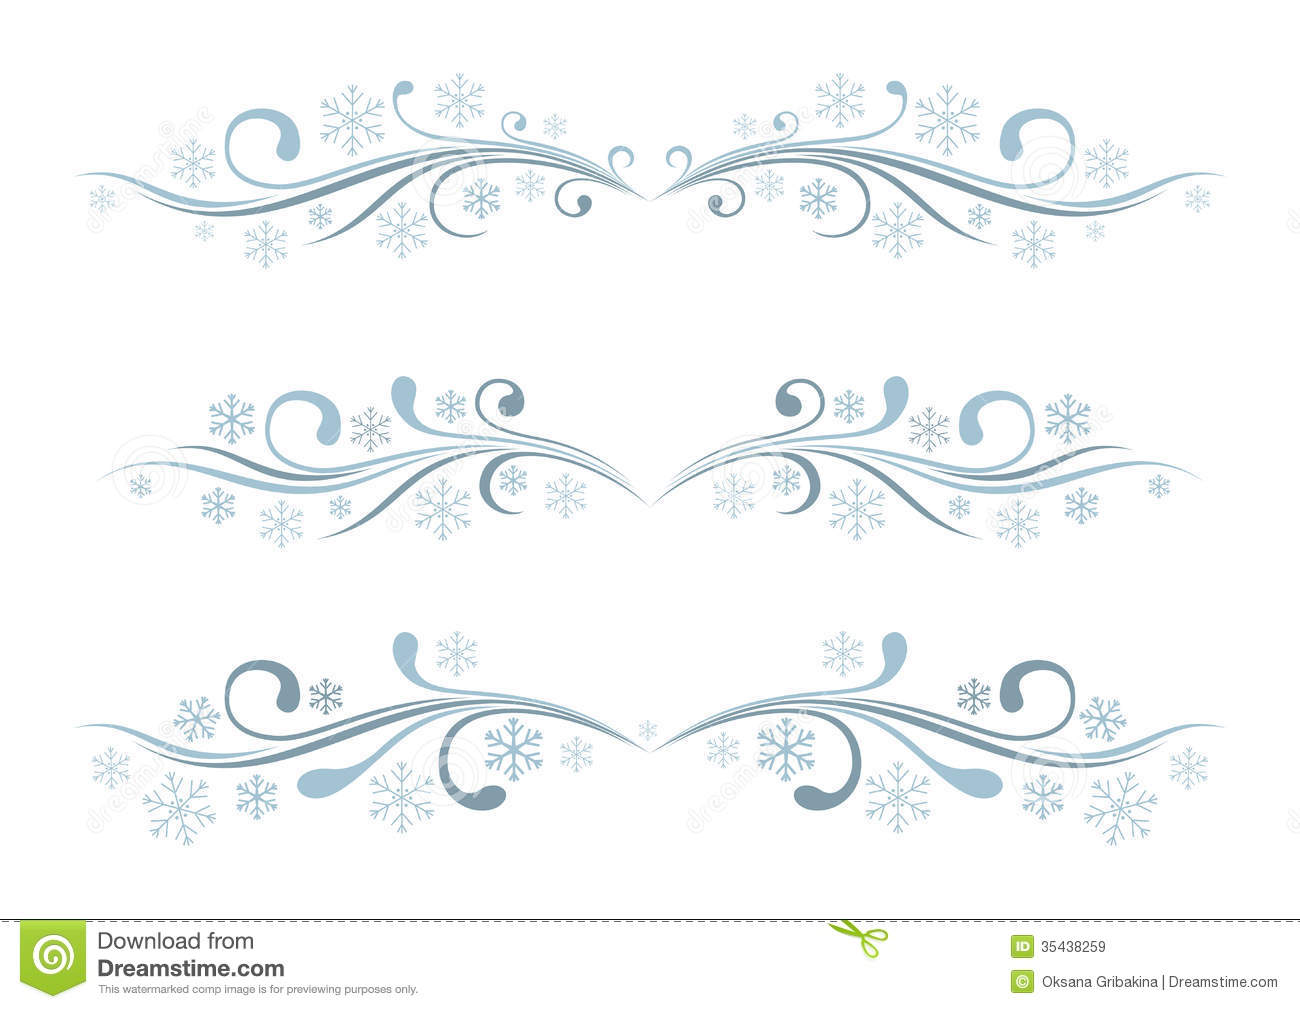 Royalty Free Stock Images: Set of winter borders. Image: 35438259